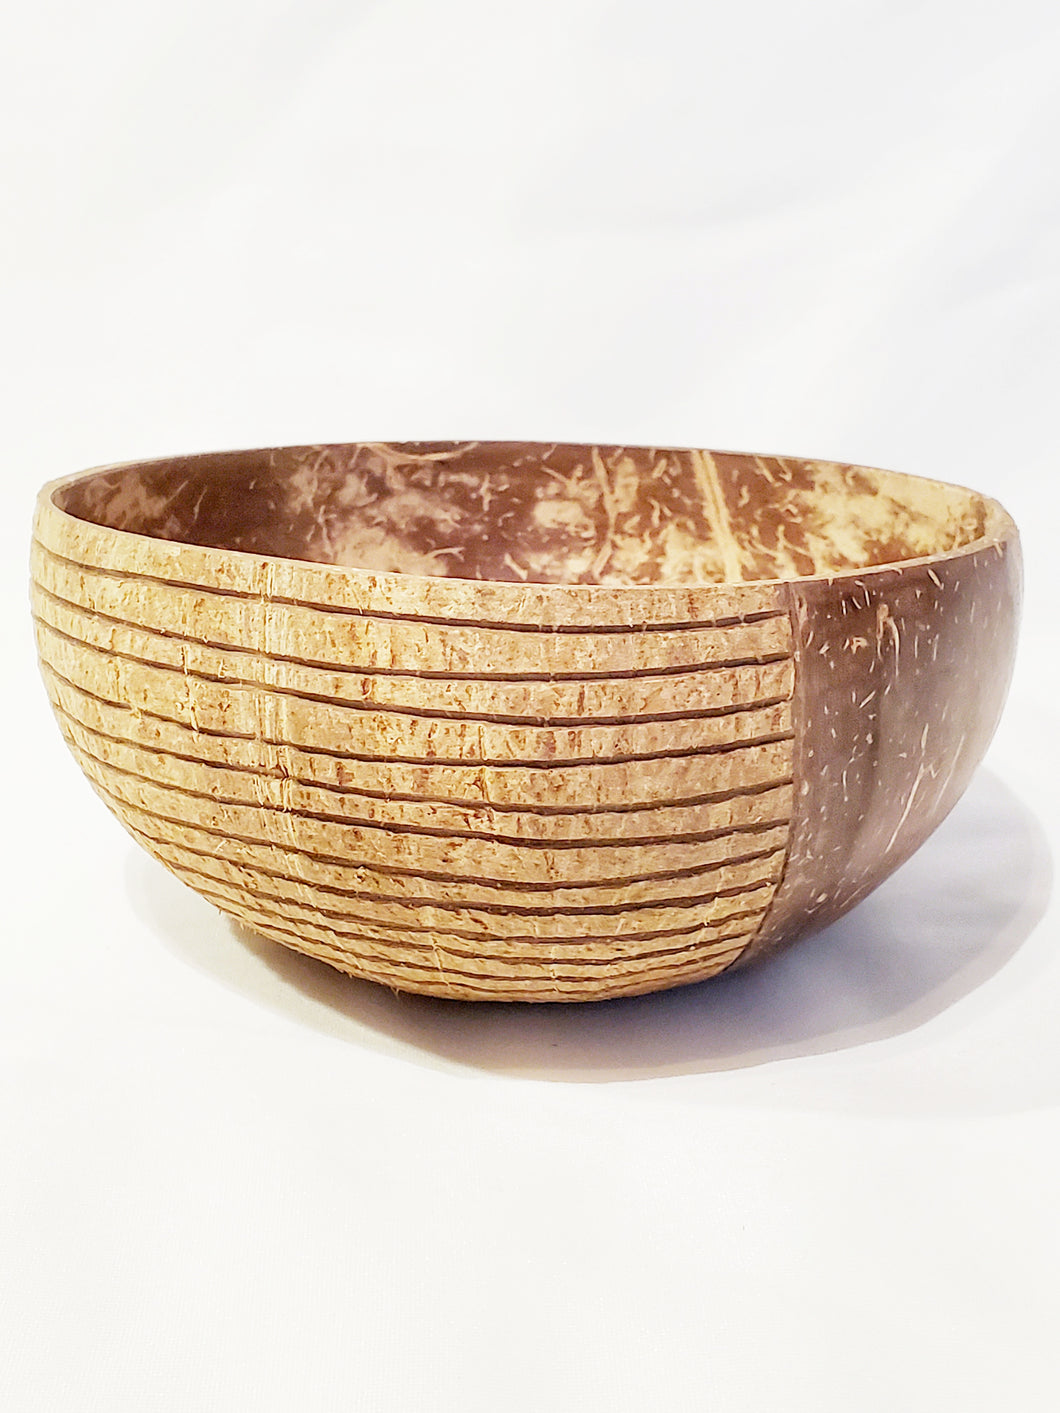 Journey Coconut Bowl (13-15 cm diameter)